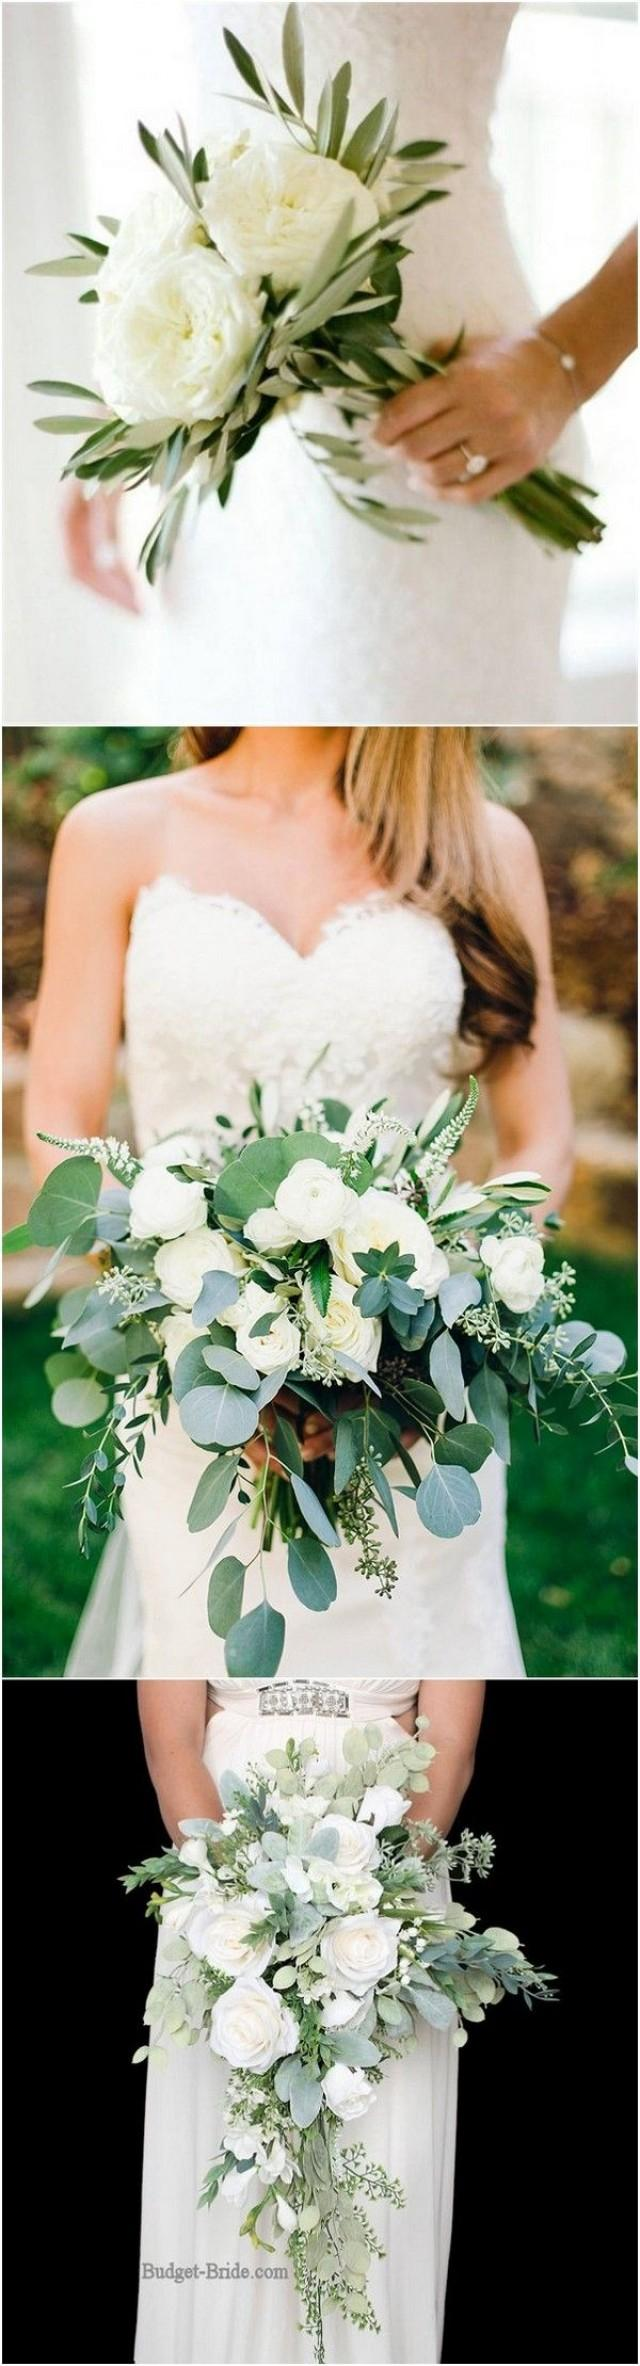 Top 10 White And Green Wedding Bouquet Ideas You'll Love - Page 2 Of 2